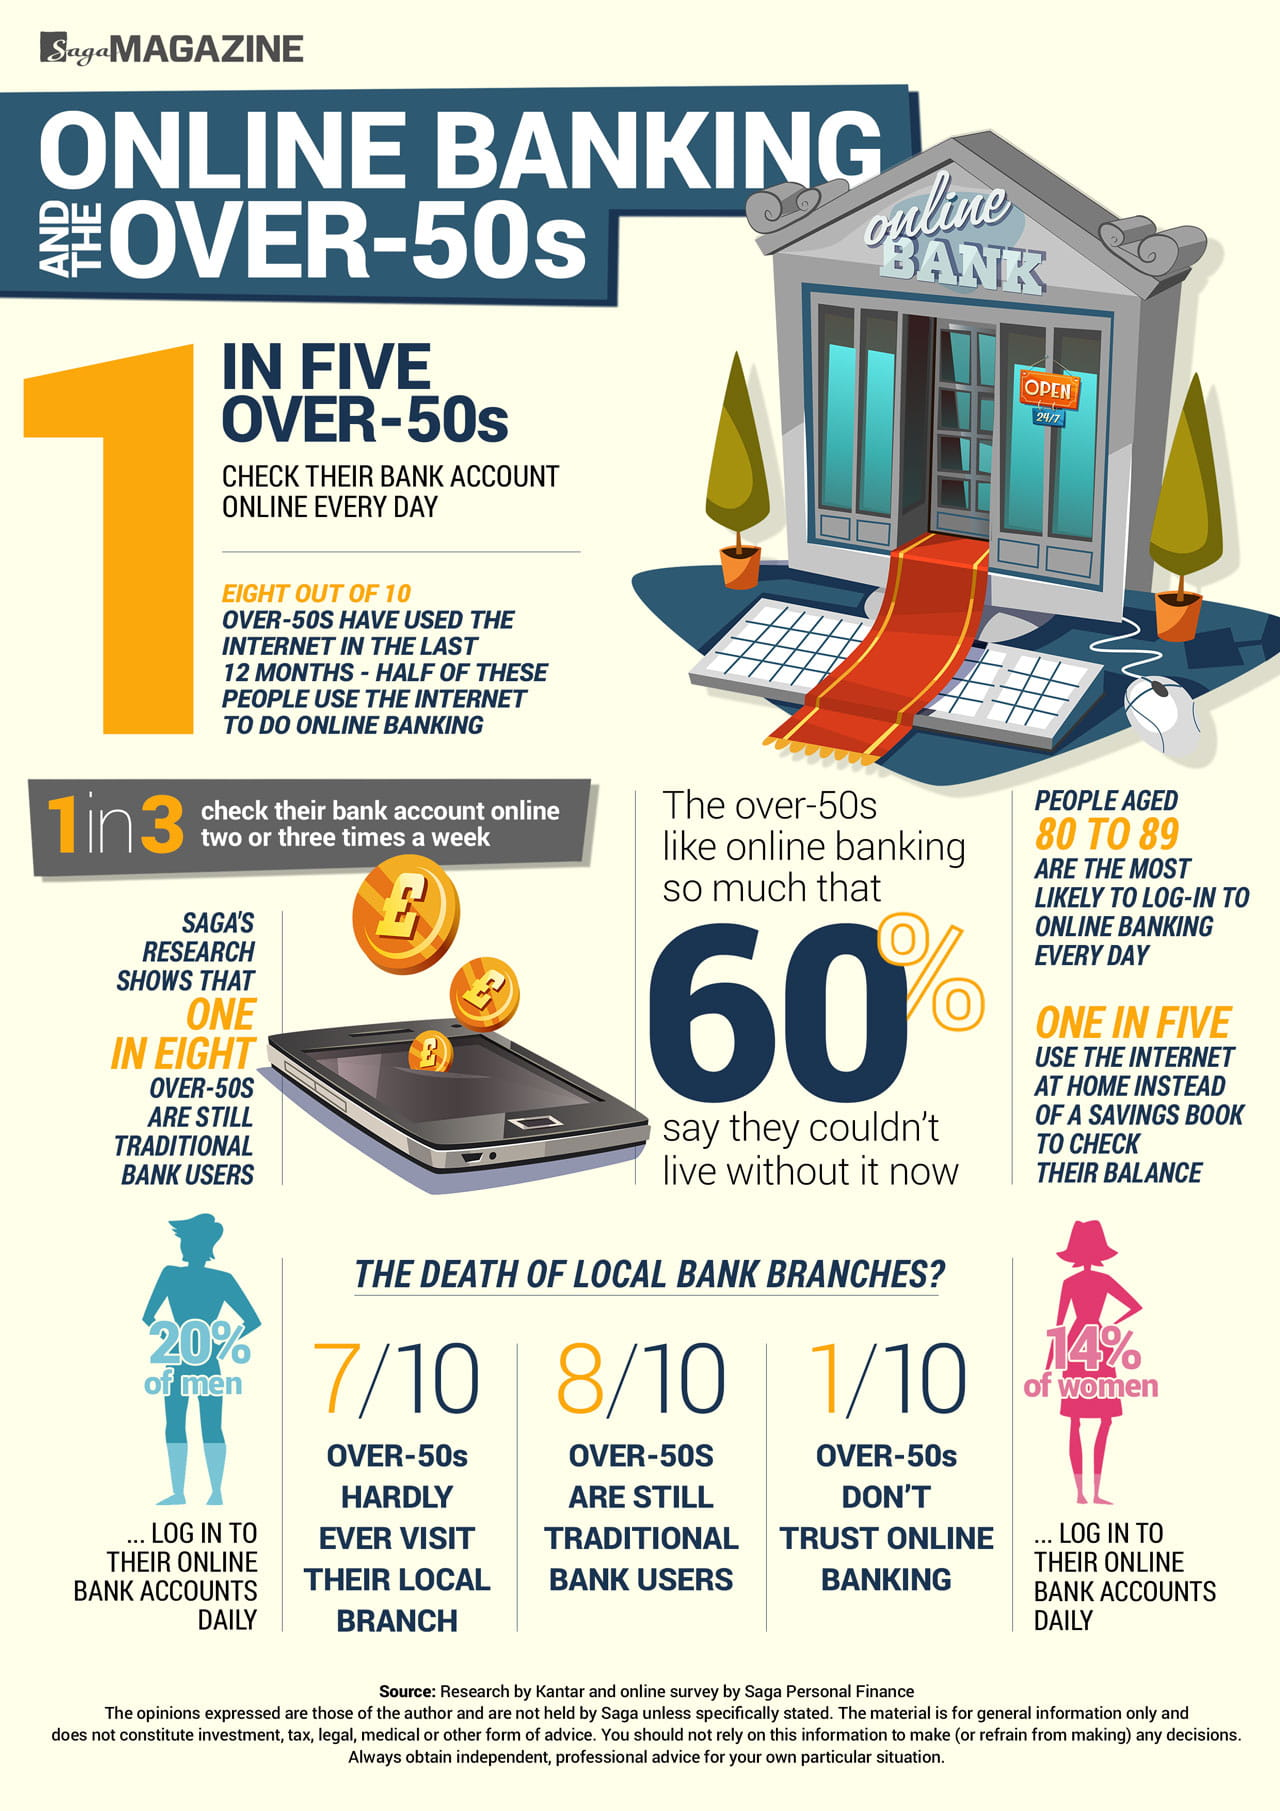 Online banking and the over-50s infographic